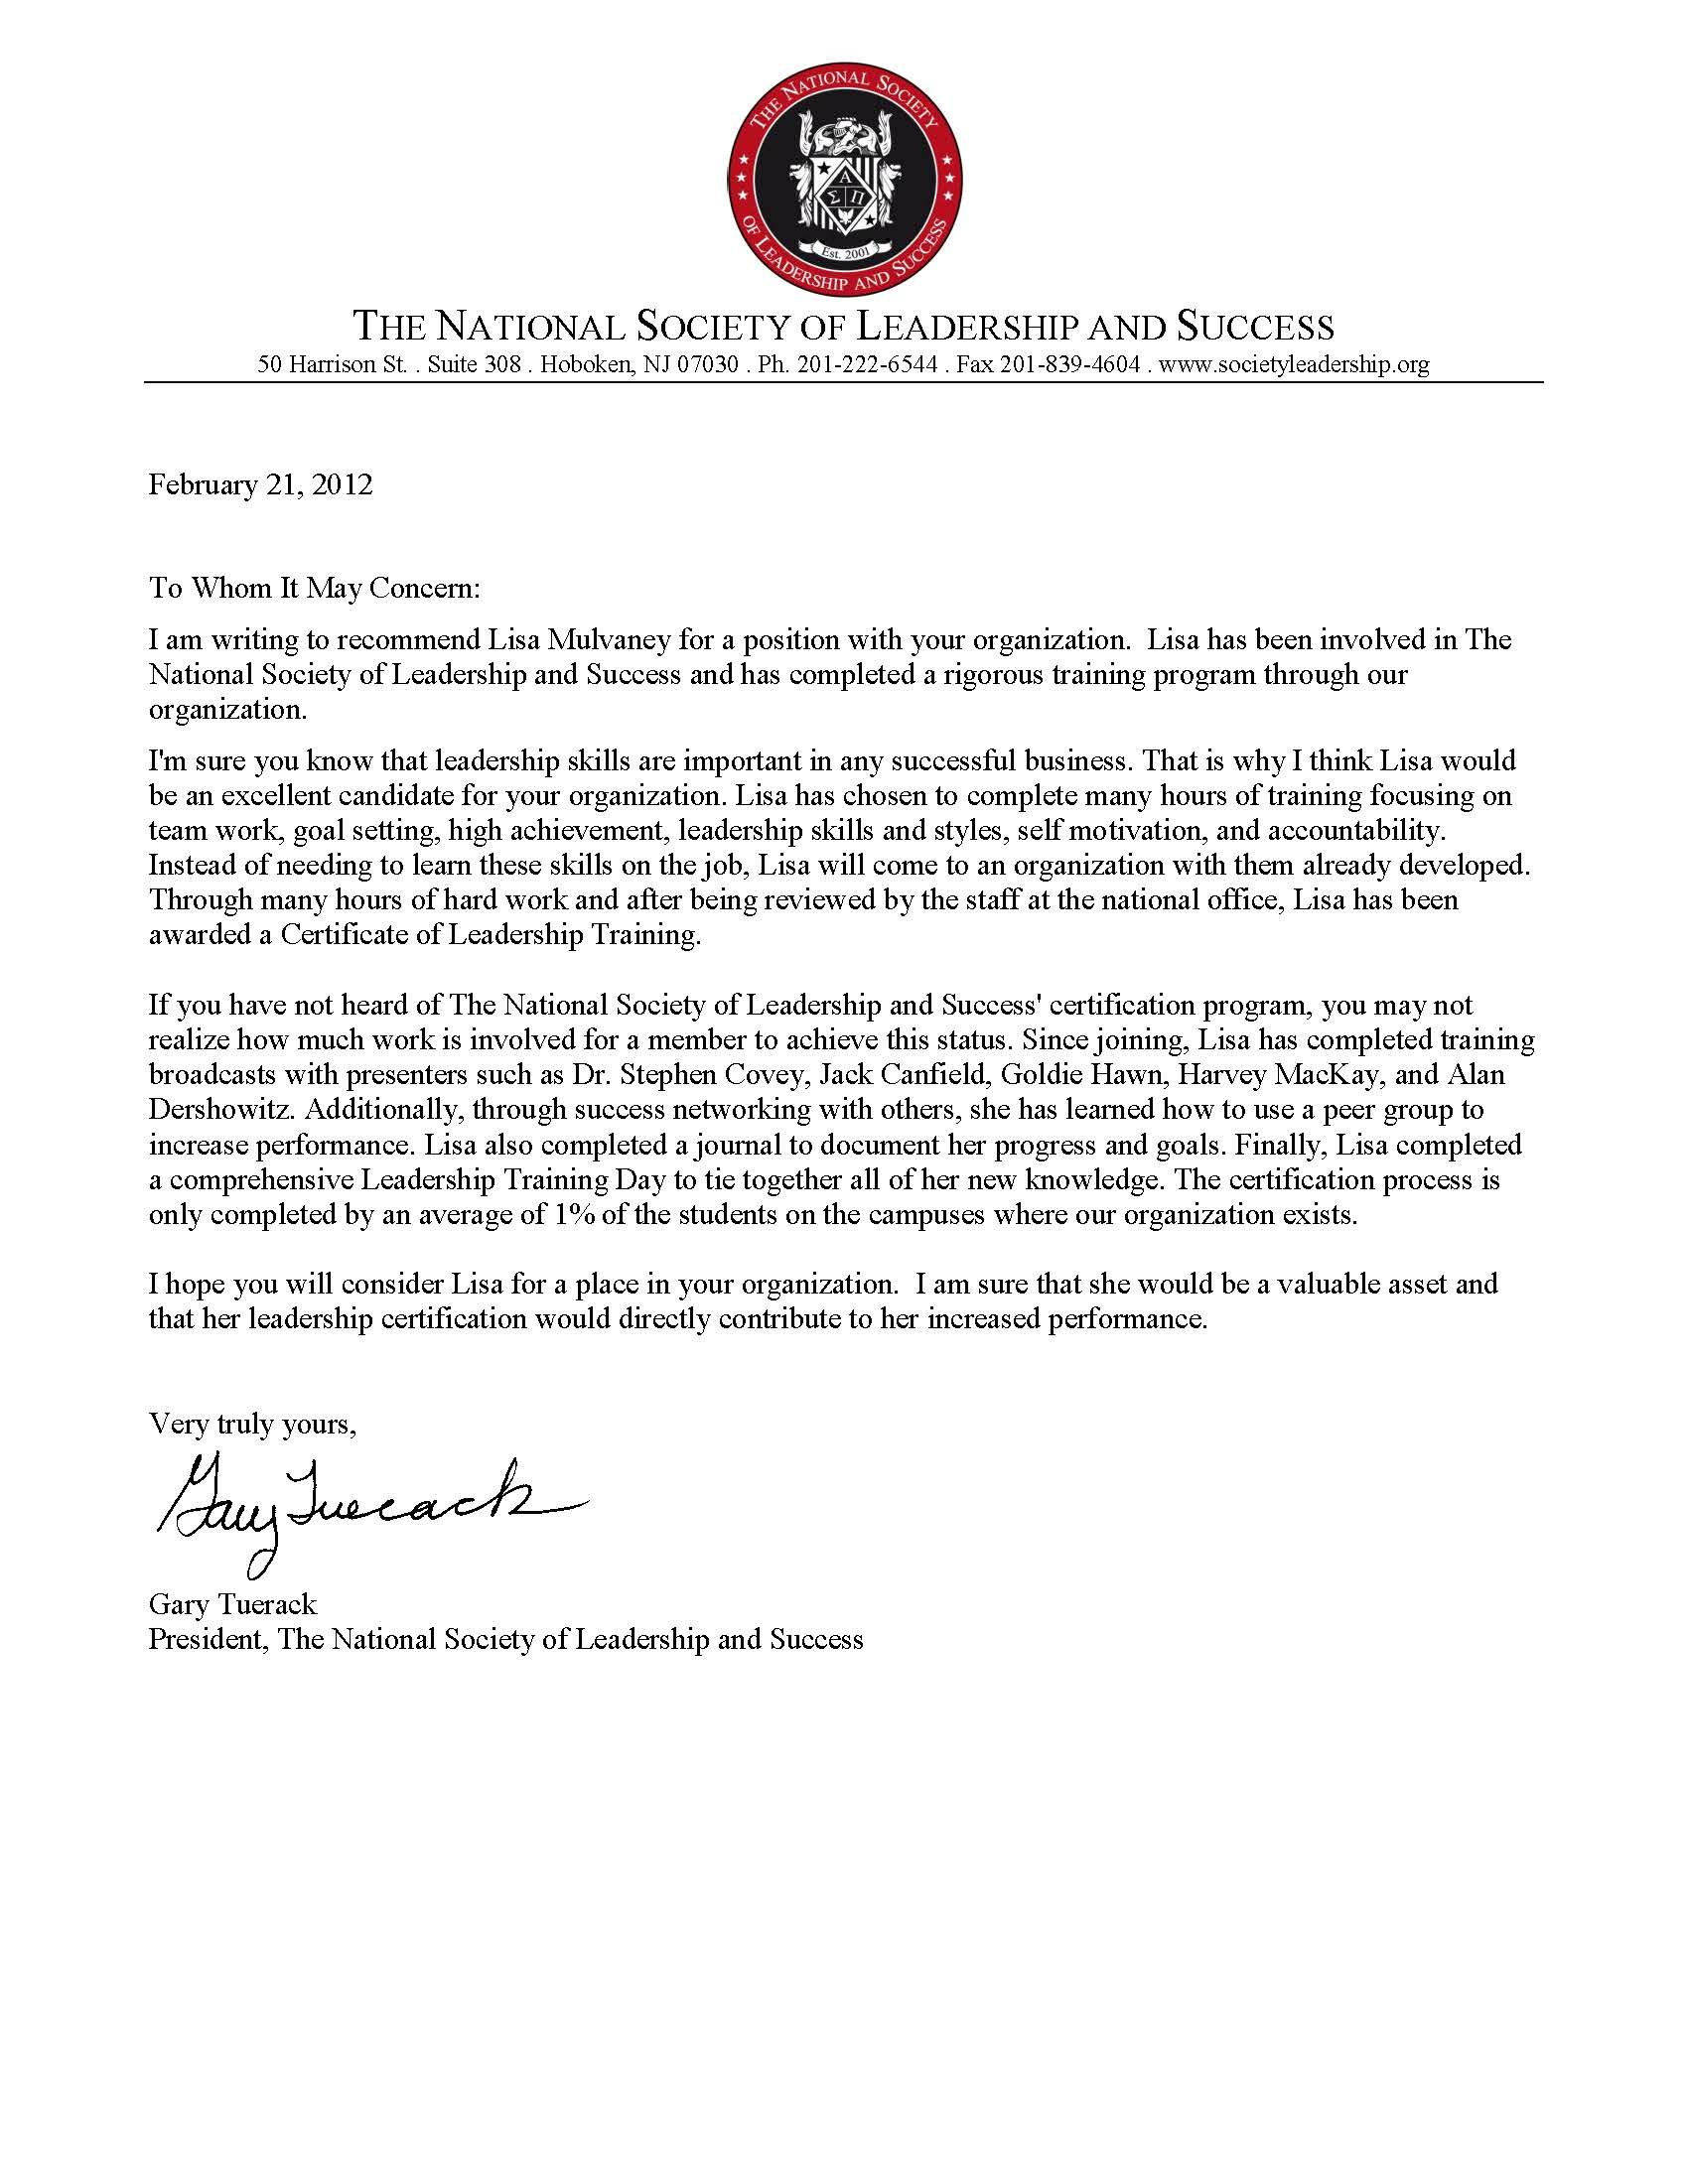 Letter of from The National Society of